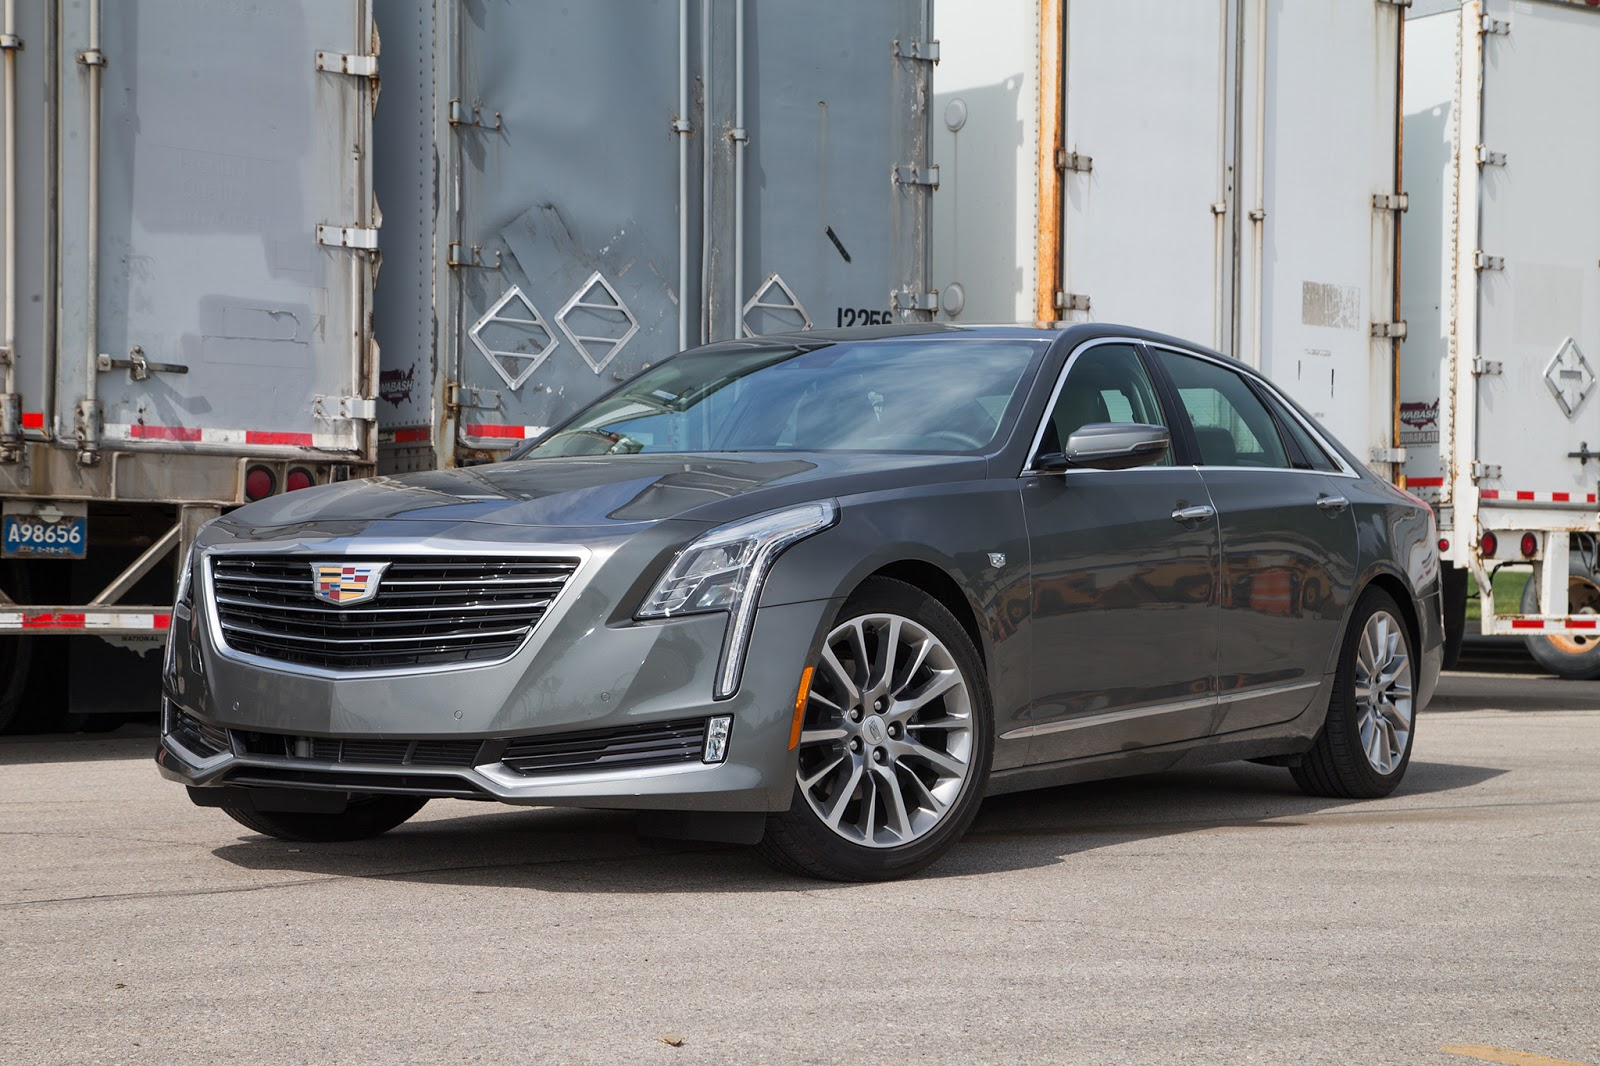 2016 Cadillac Ct6 Is Legit Luxury Autoguide Com News: Automotive Assembly Line: One Week With: 2016 Cadillac CT6